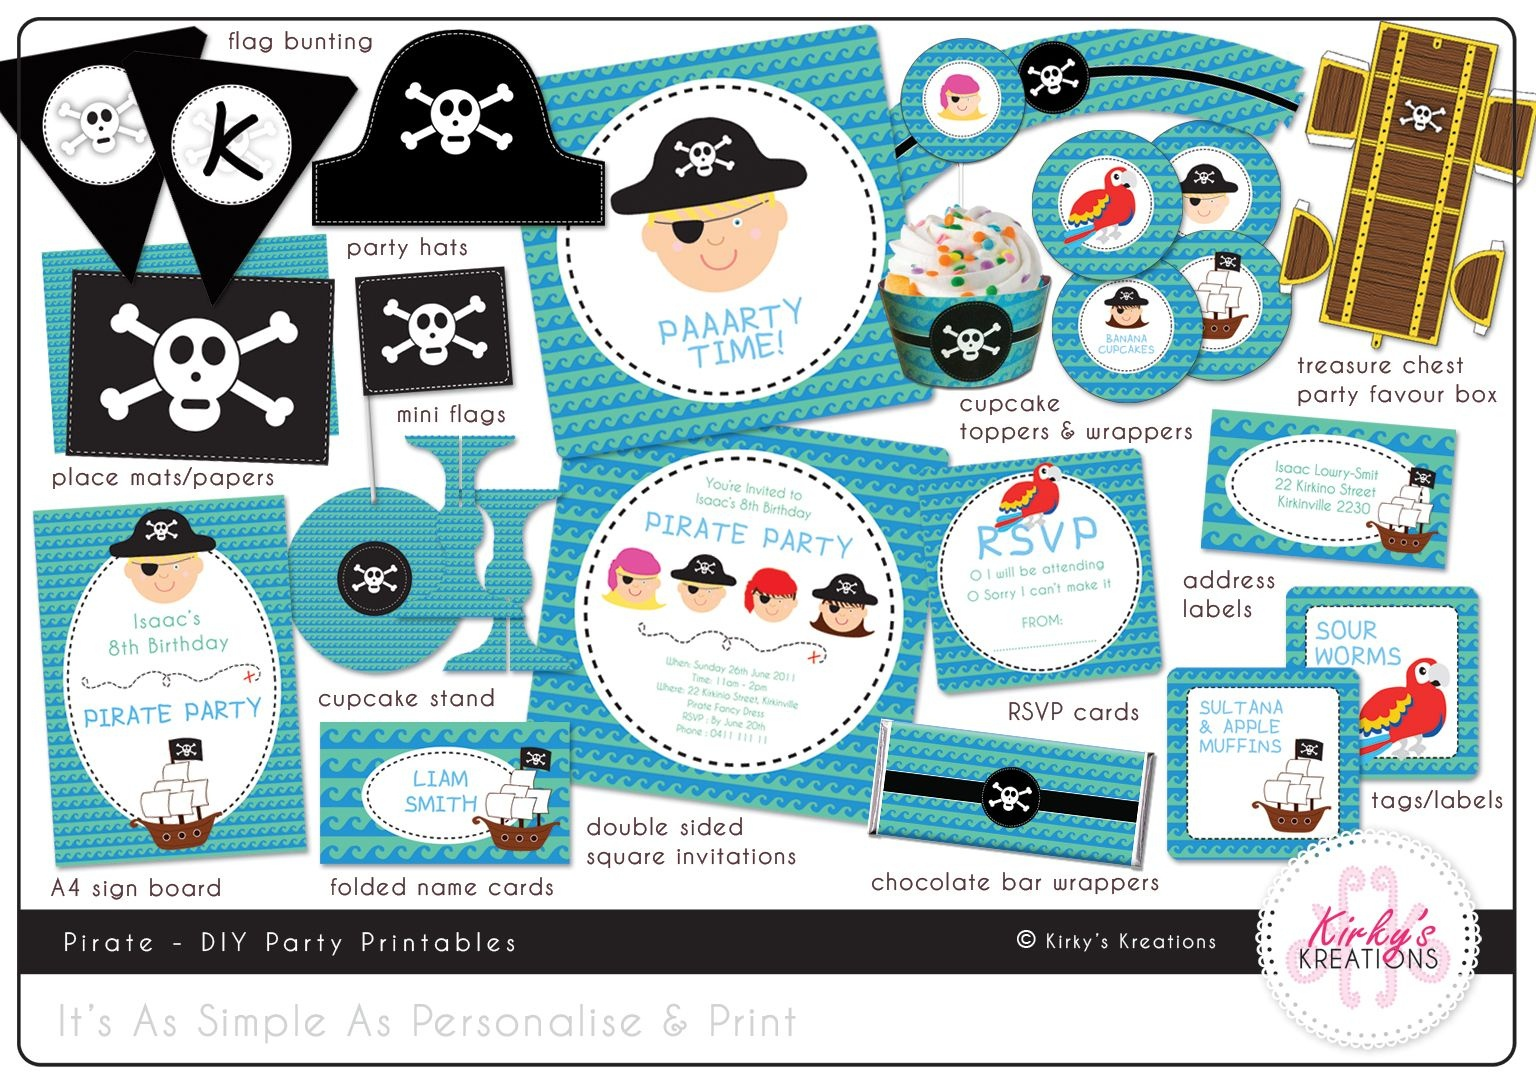 Free Printable Pirate Party Invitations Templates | Birthday In 2019 - Free Printable Pirate Cupcake Toppers